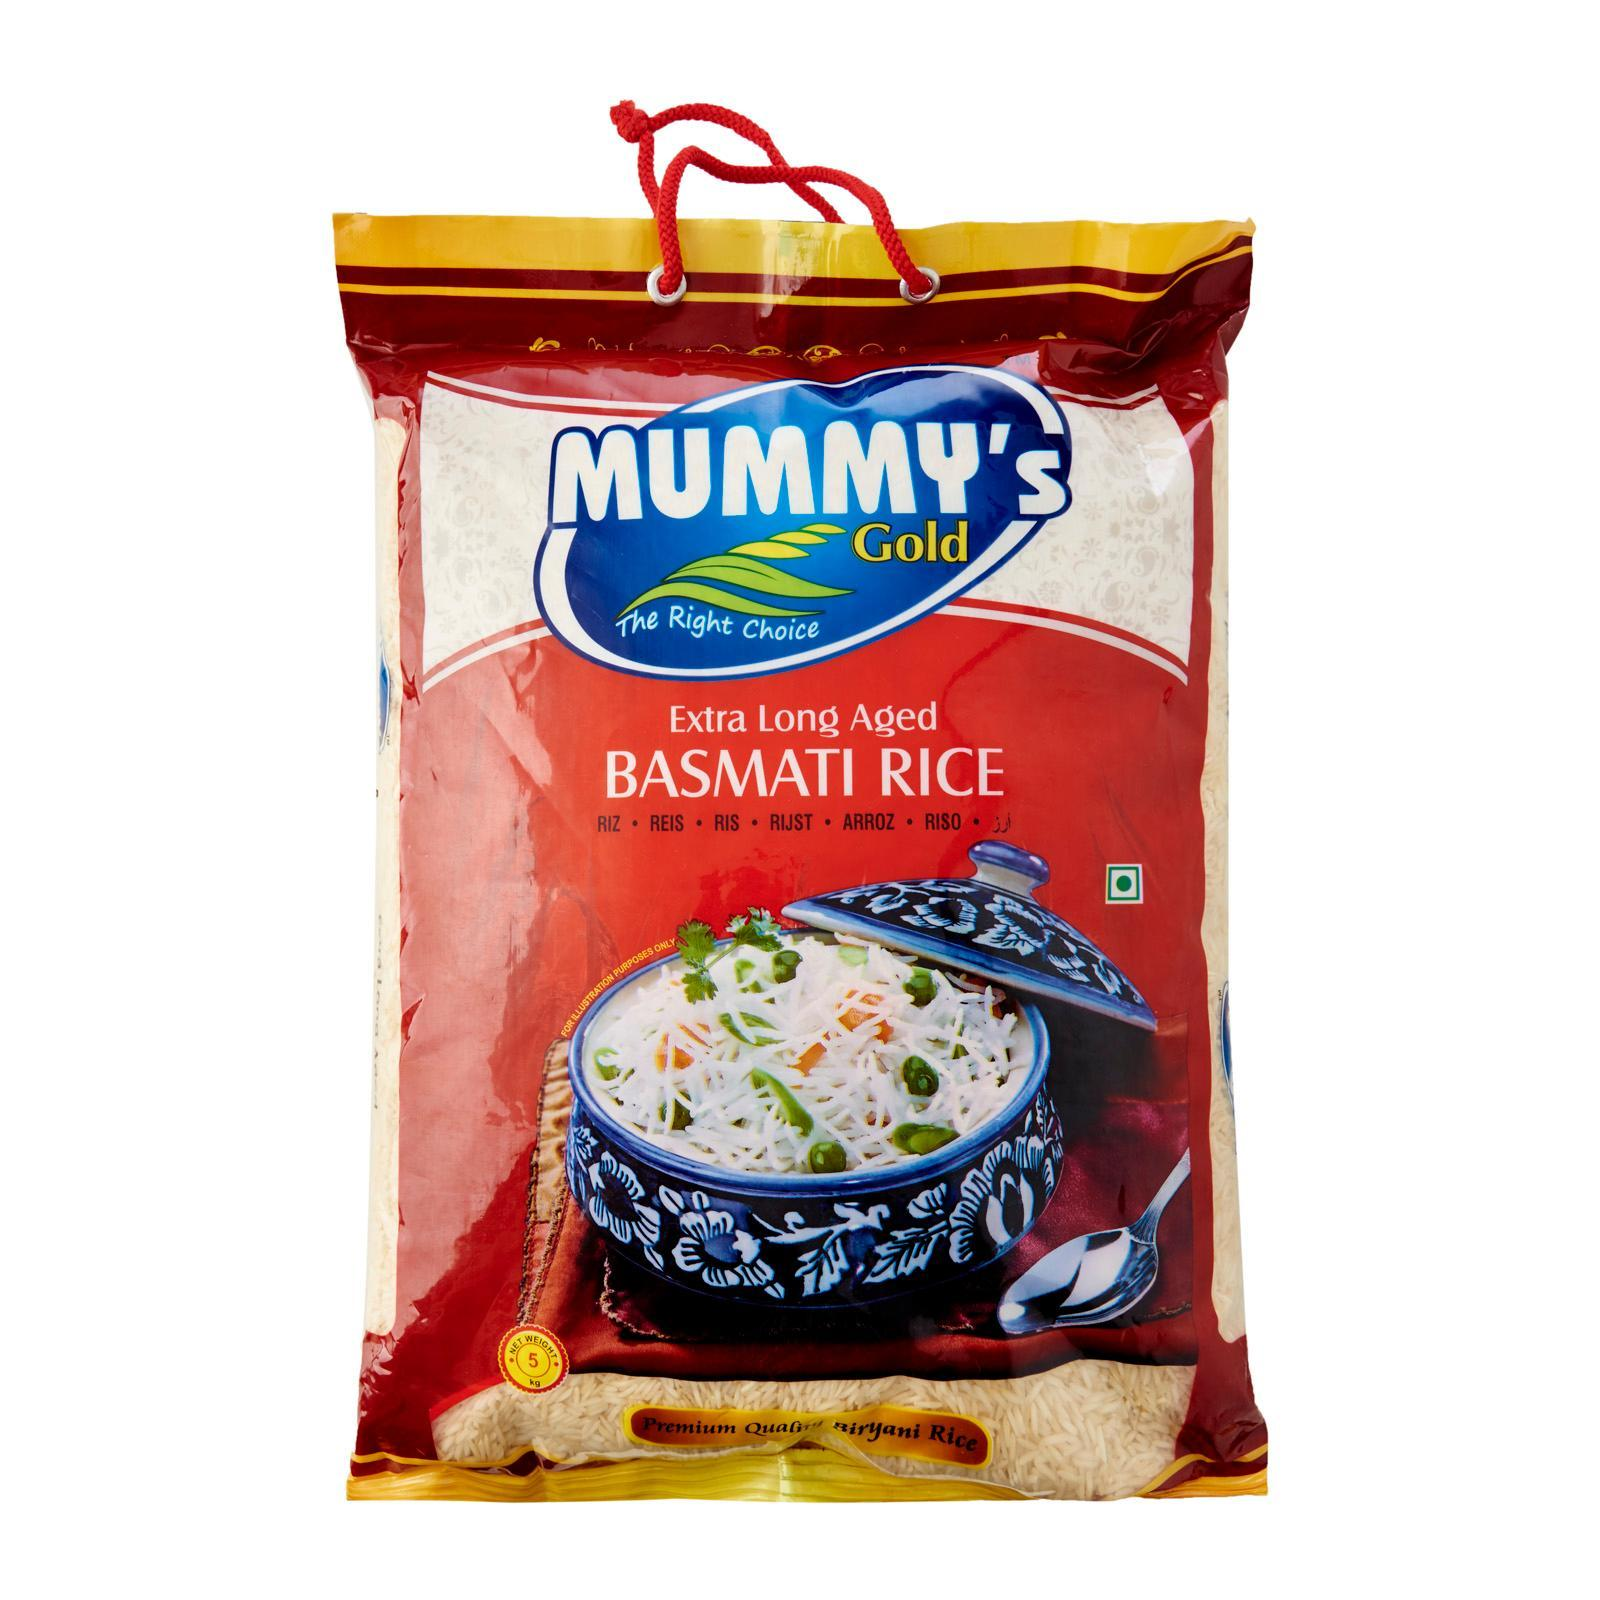 Mummys Gold Basmati Rice 5kg Extra Long, Aged, Healthy, Handpicked, Pure Biryani Rice, Indian Food By Merlion Mart.